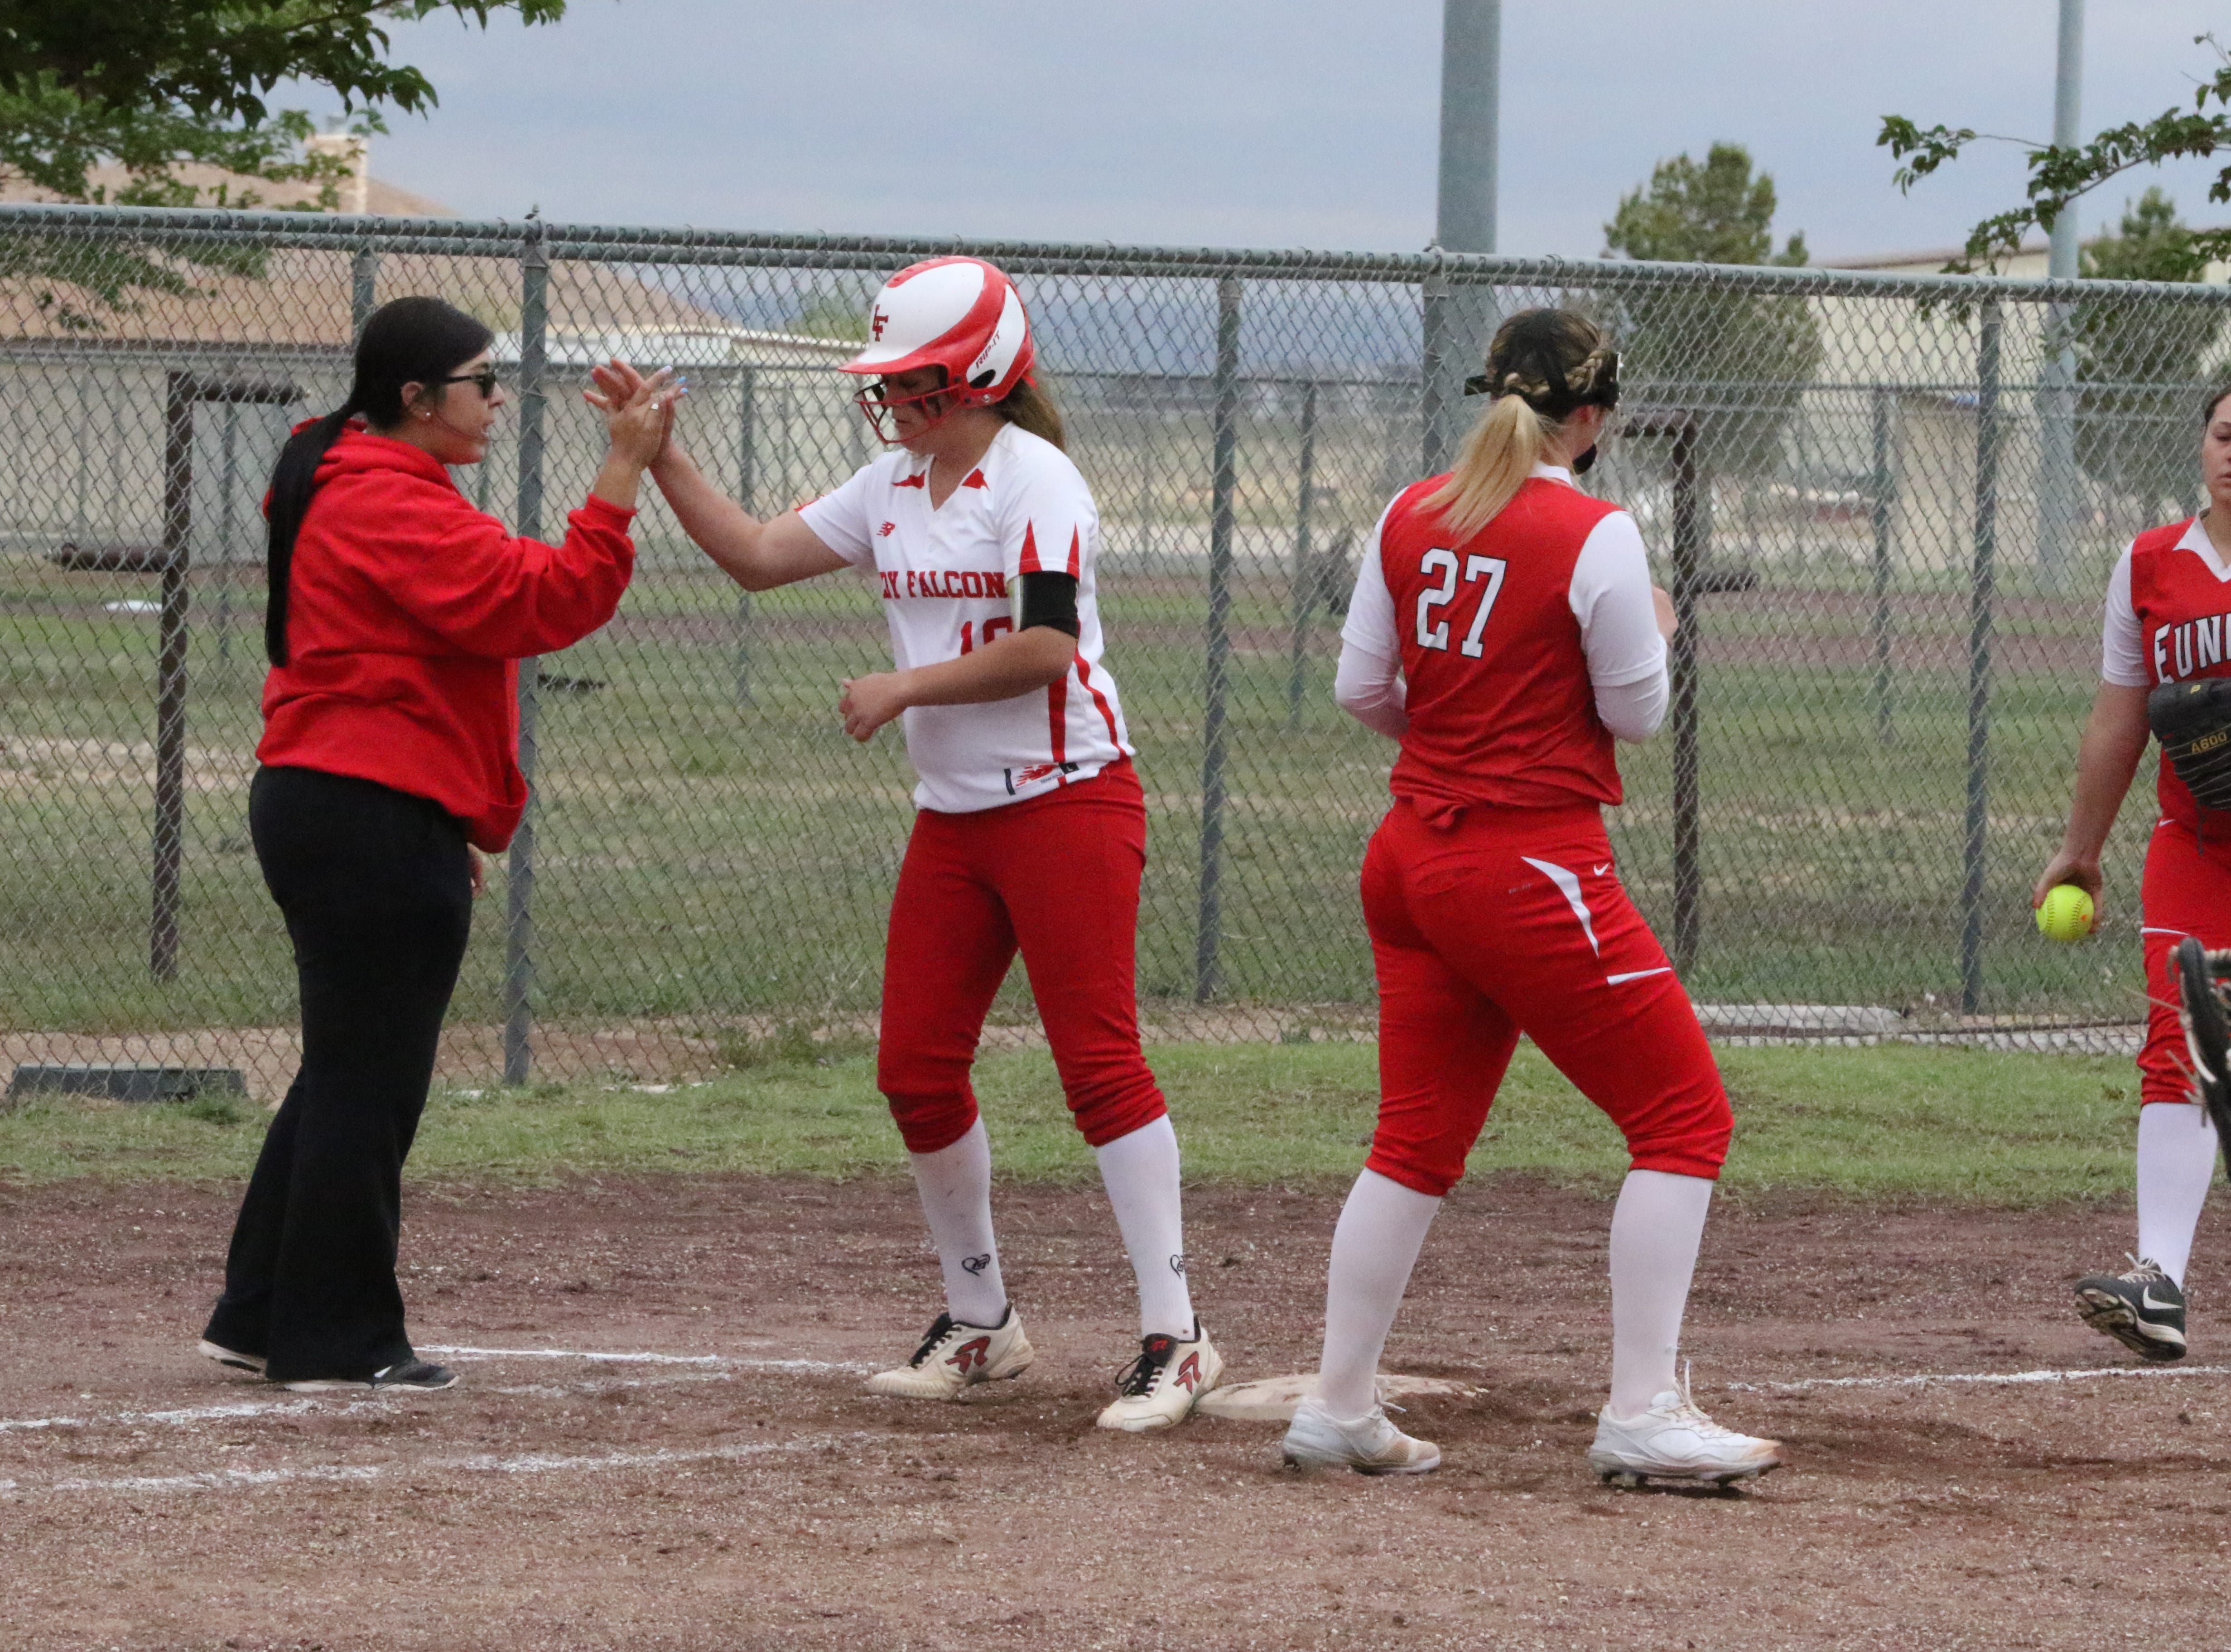 Faith McDonald high-fives coach  Kendra Granado after hitting a triple in Game 1 of Saturday's doubleheader.